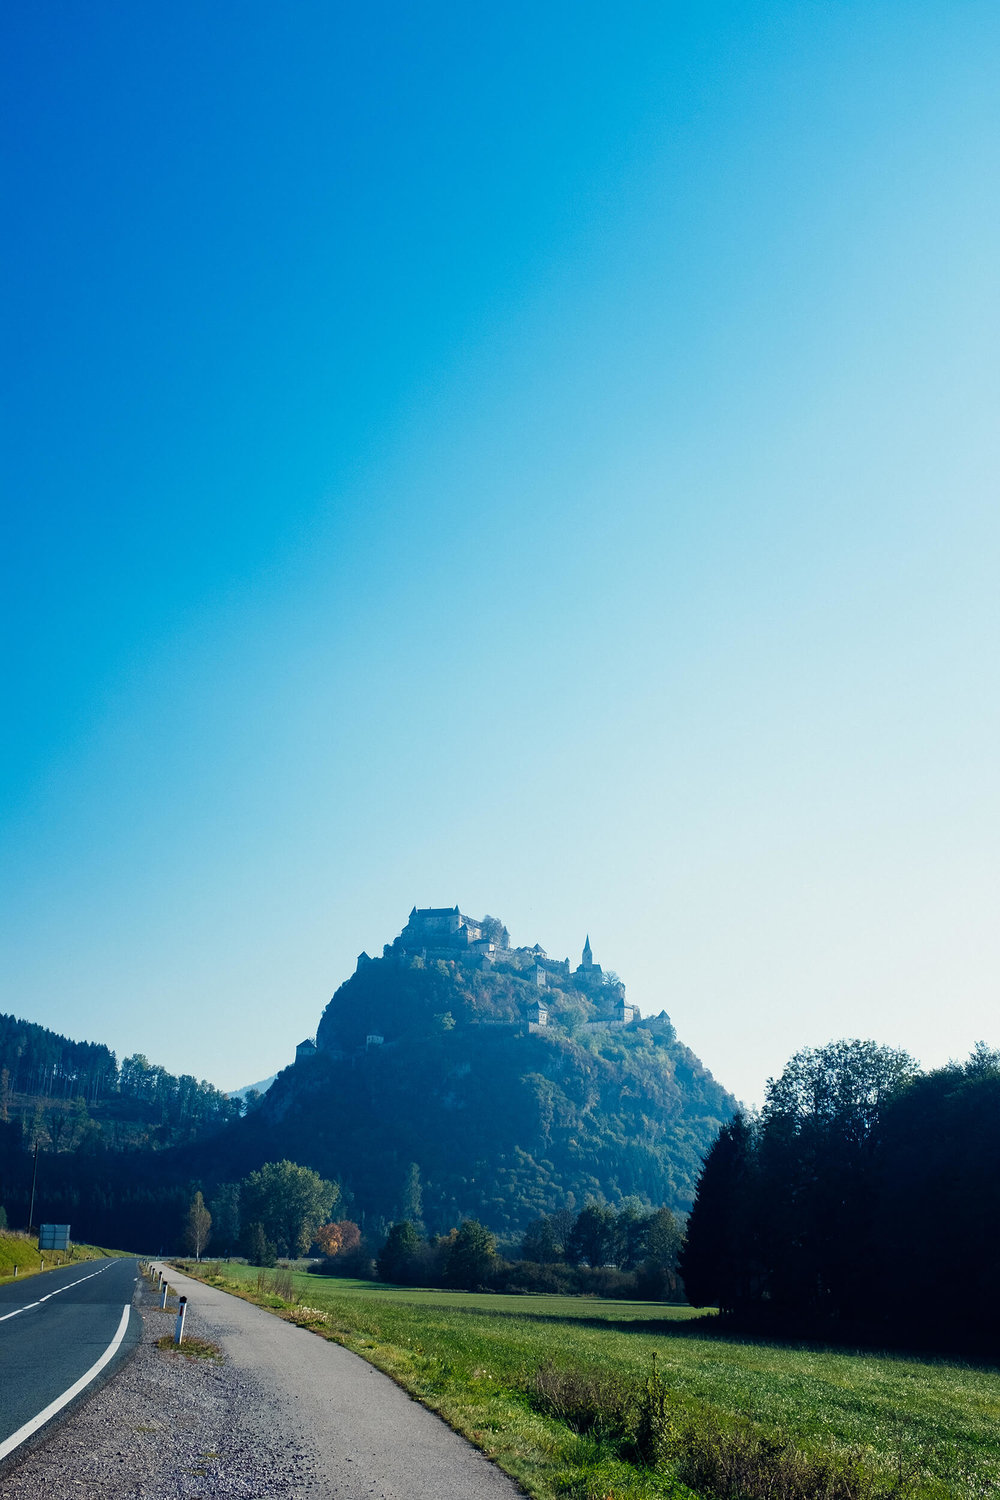 The Hochosterwitz castle is said to have inspired Disney's Sleeping Beauty castle